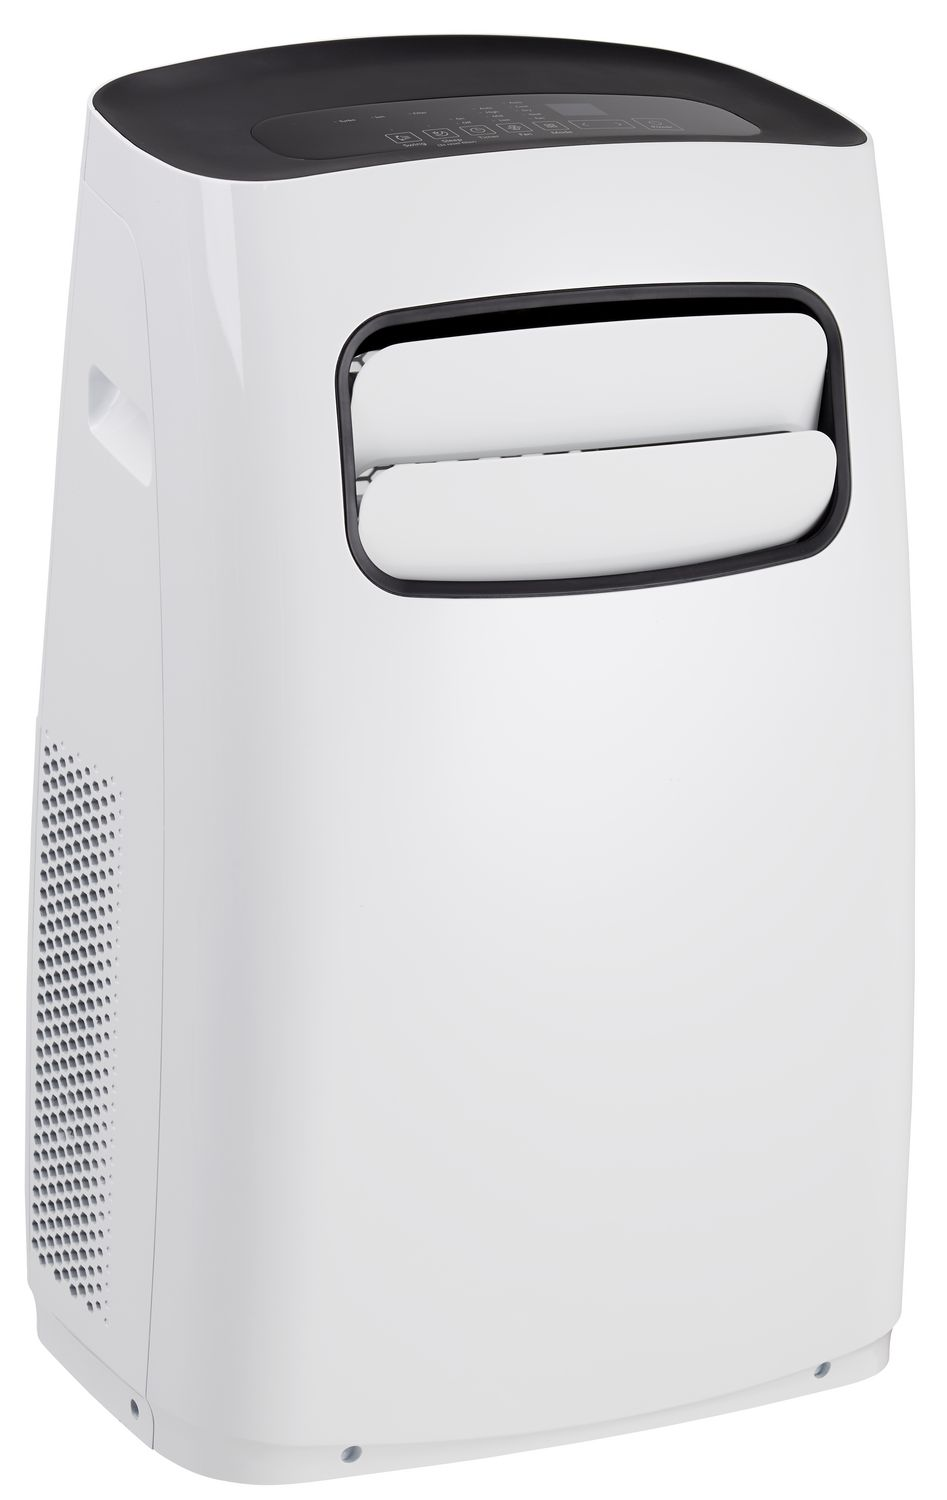 Climatiseur Uberhaus Danby Products Danby 12 000 Btu Portable 3 In 1 Air Conditioner